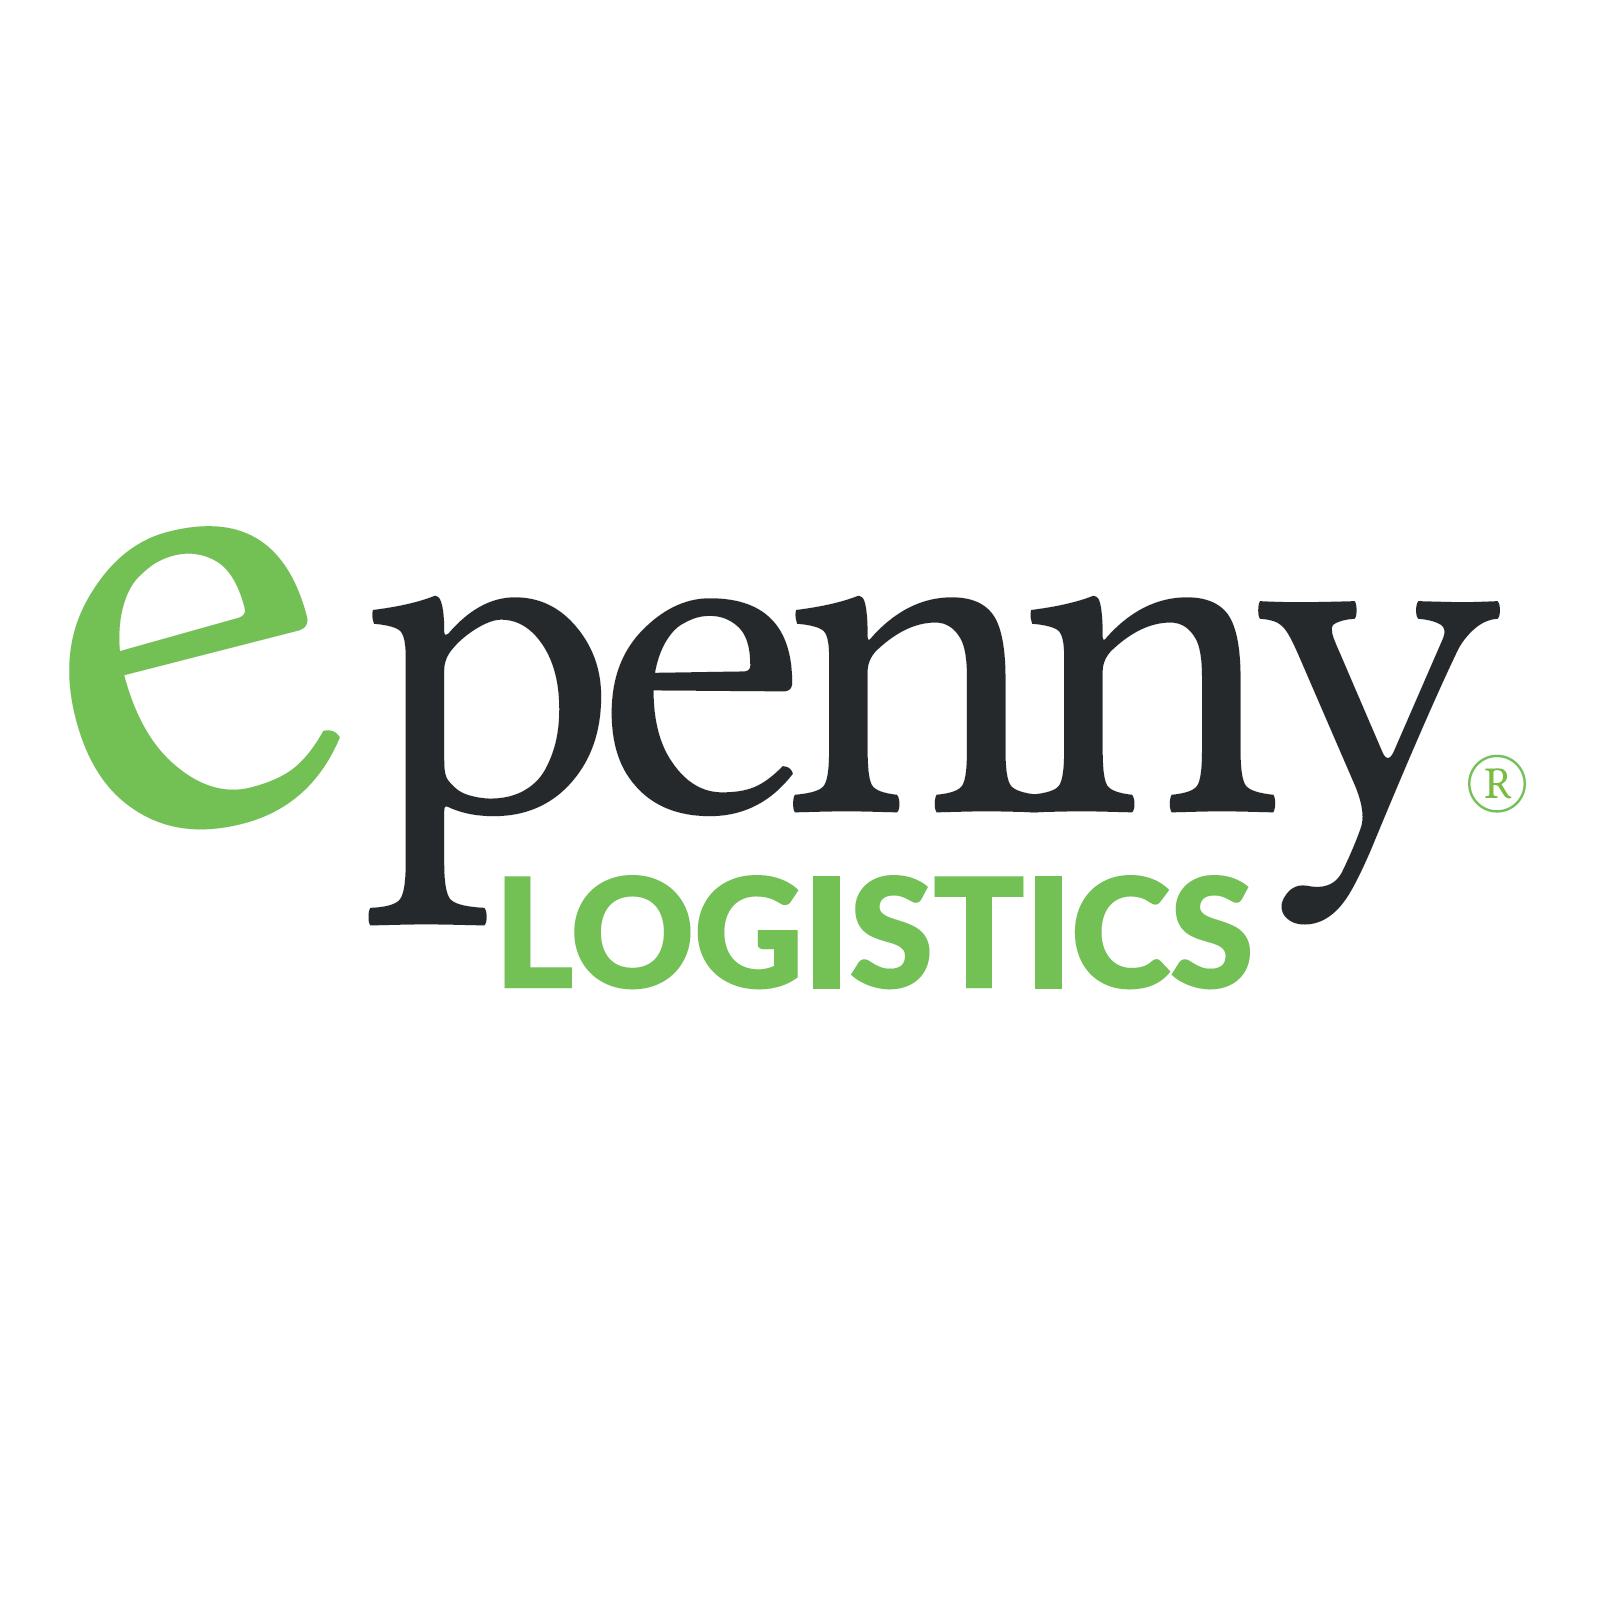 ePenny Logistics Continues Operations with Contactless Courier & Removal Services in London.